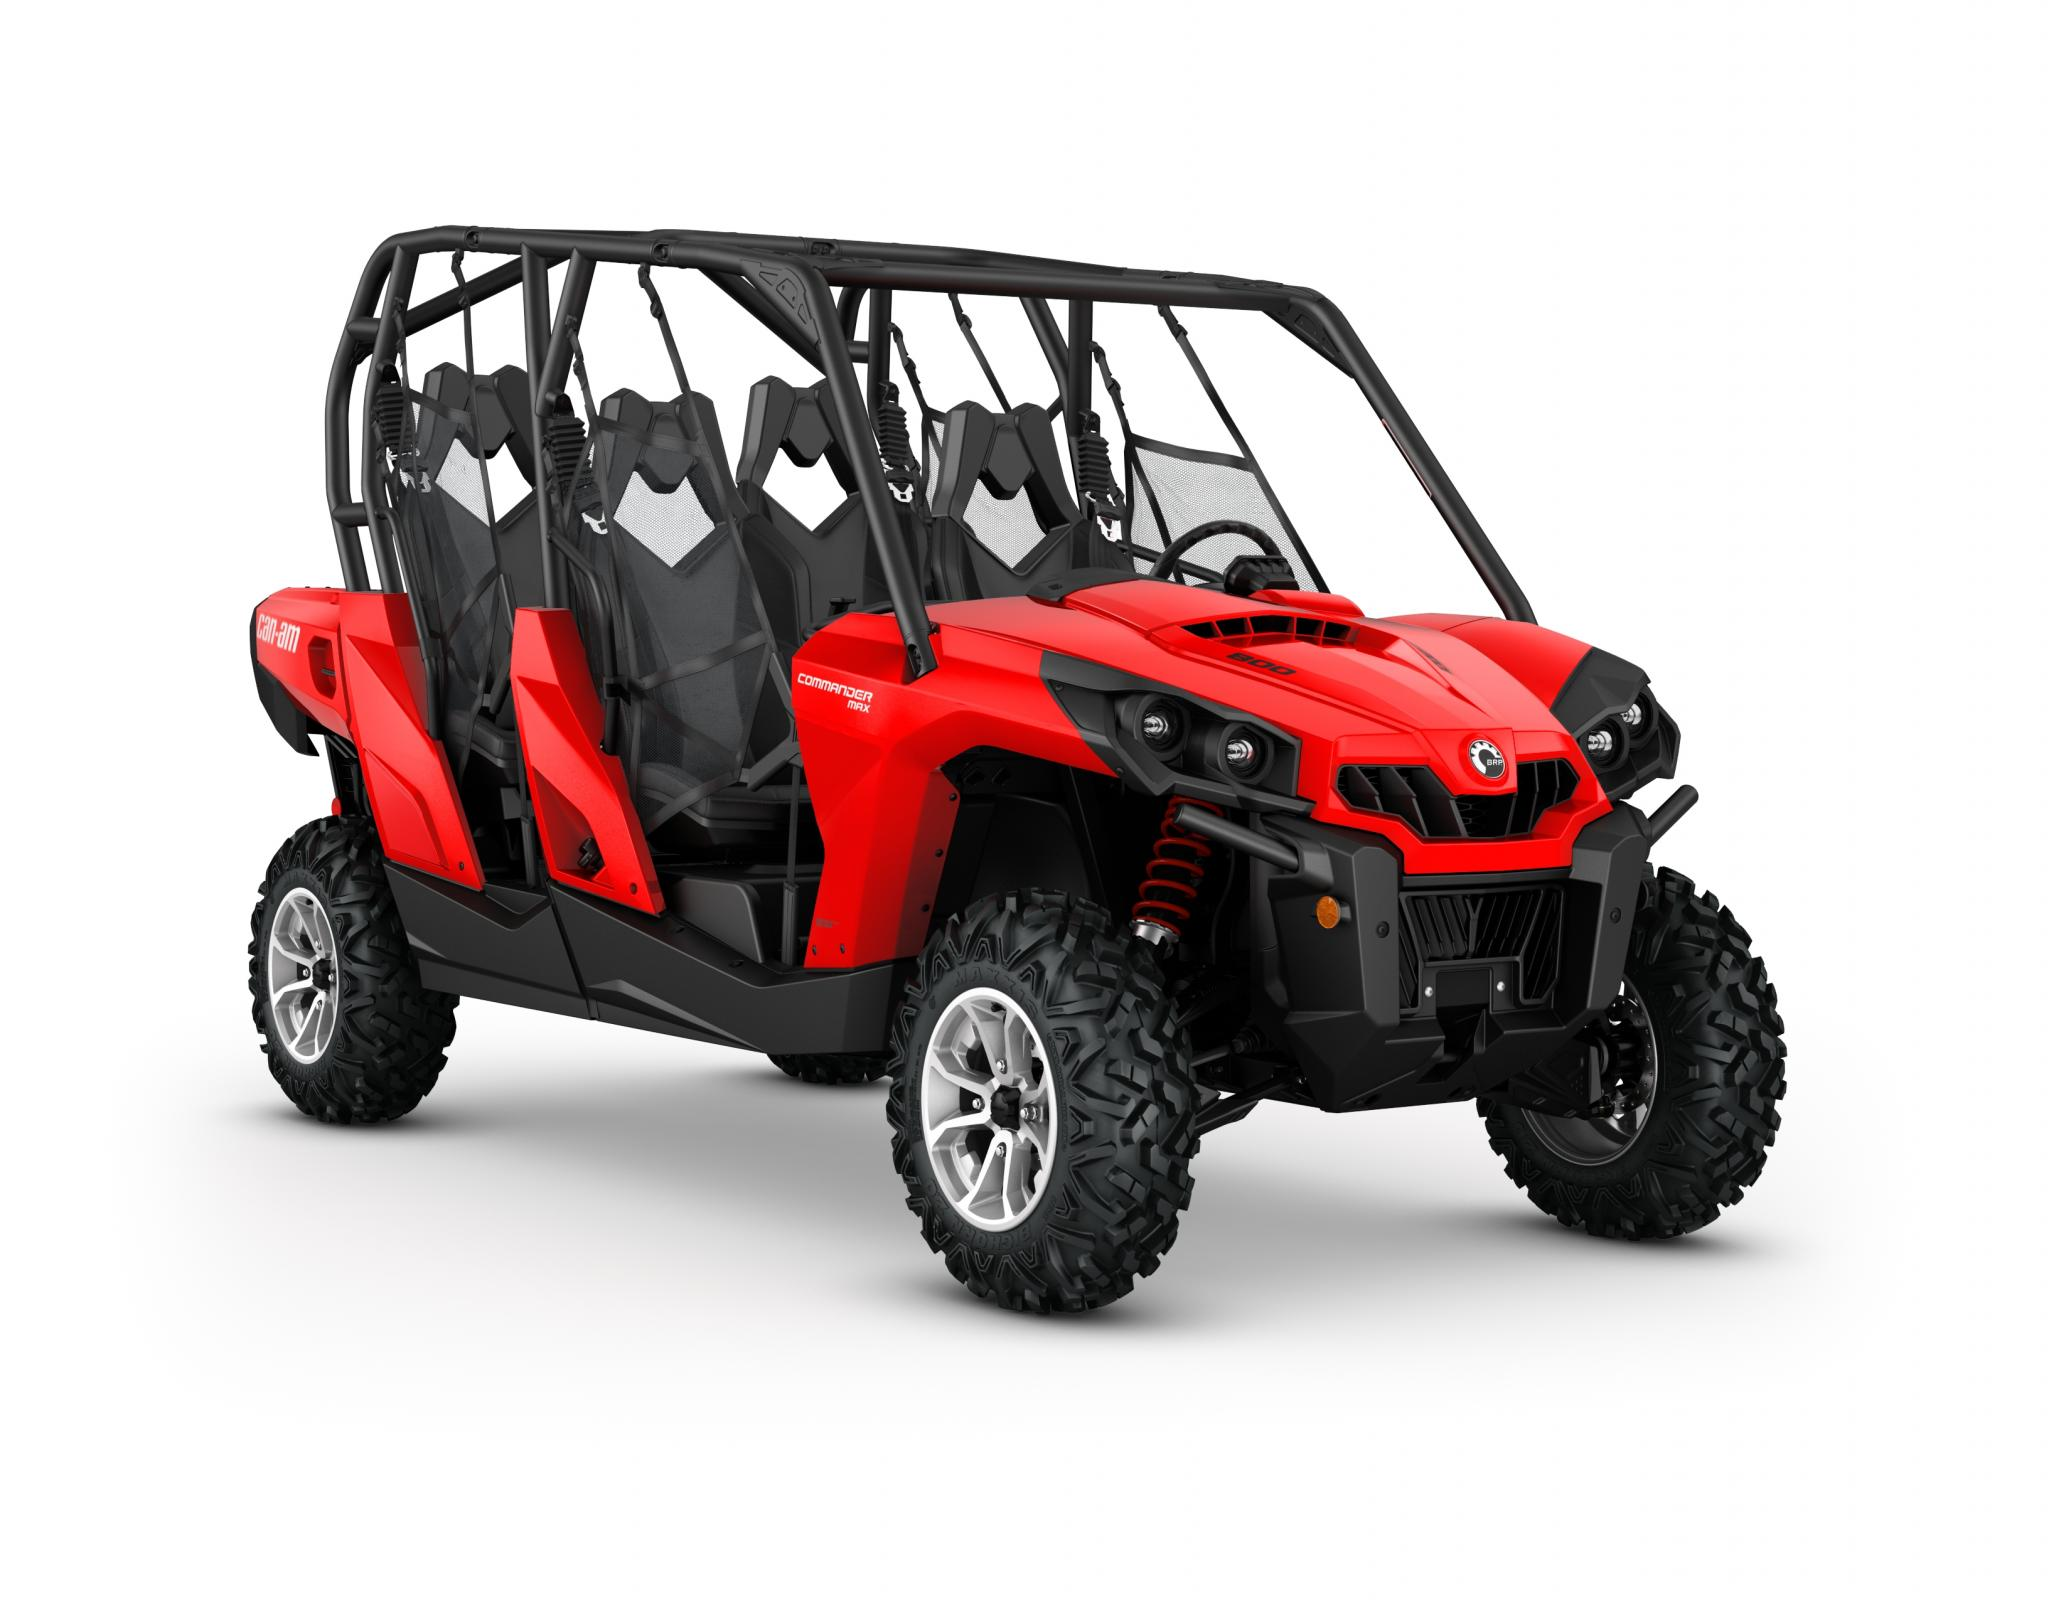 brp unveils all new can am defender side by side vehicle and more atv illustrated. Black Bedroom Furniture Sets. Home Design Ideas